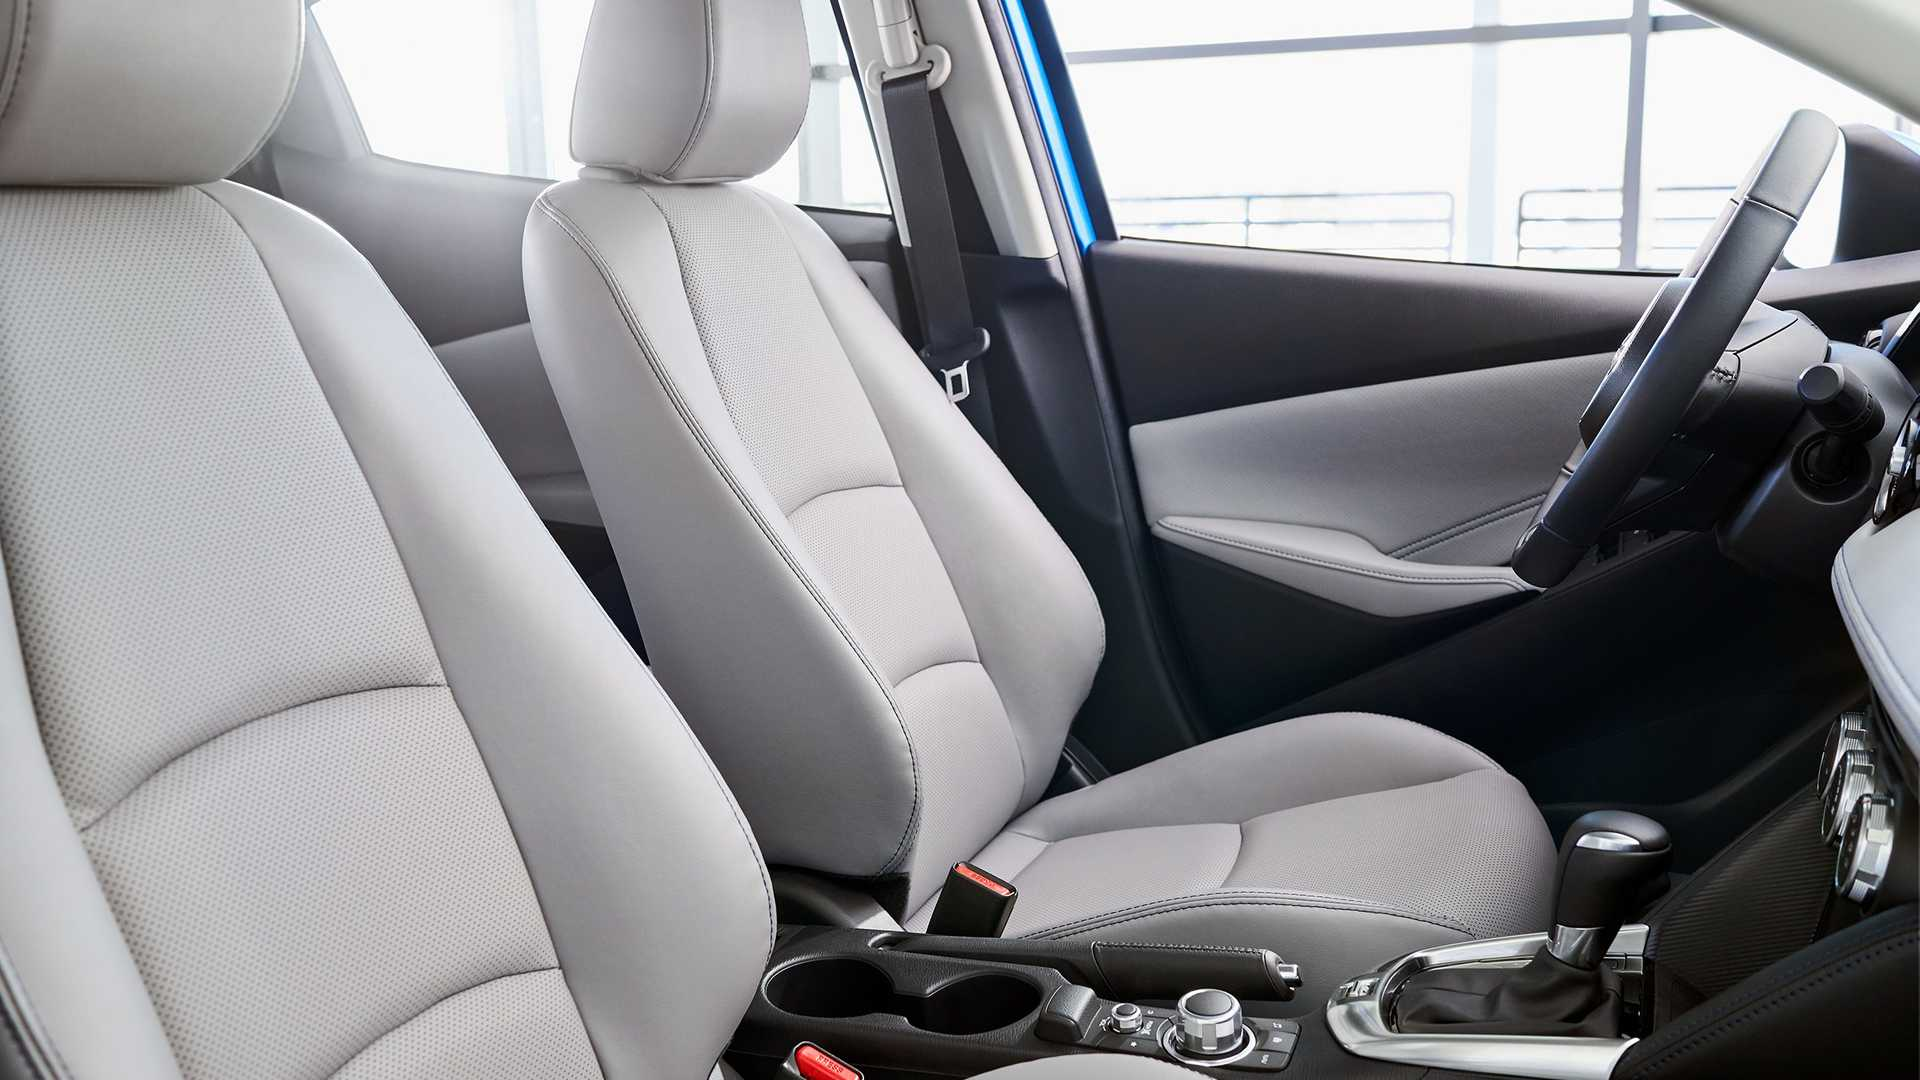 2020 Toyota Yaris Hatchback Interior Cockpit Wallpaper (10)